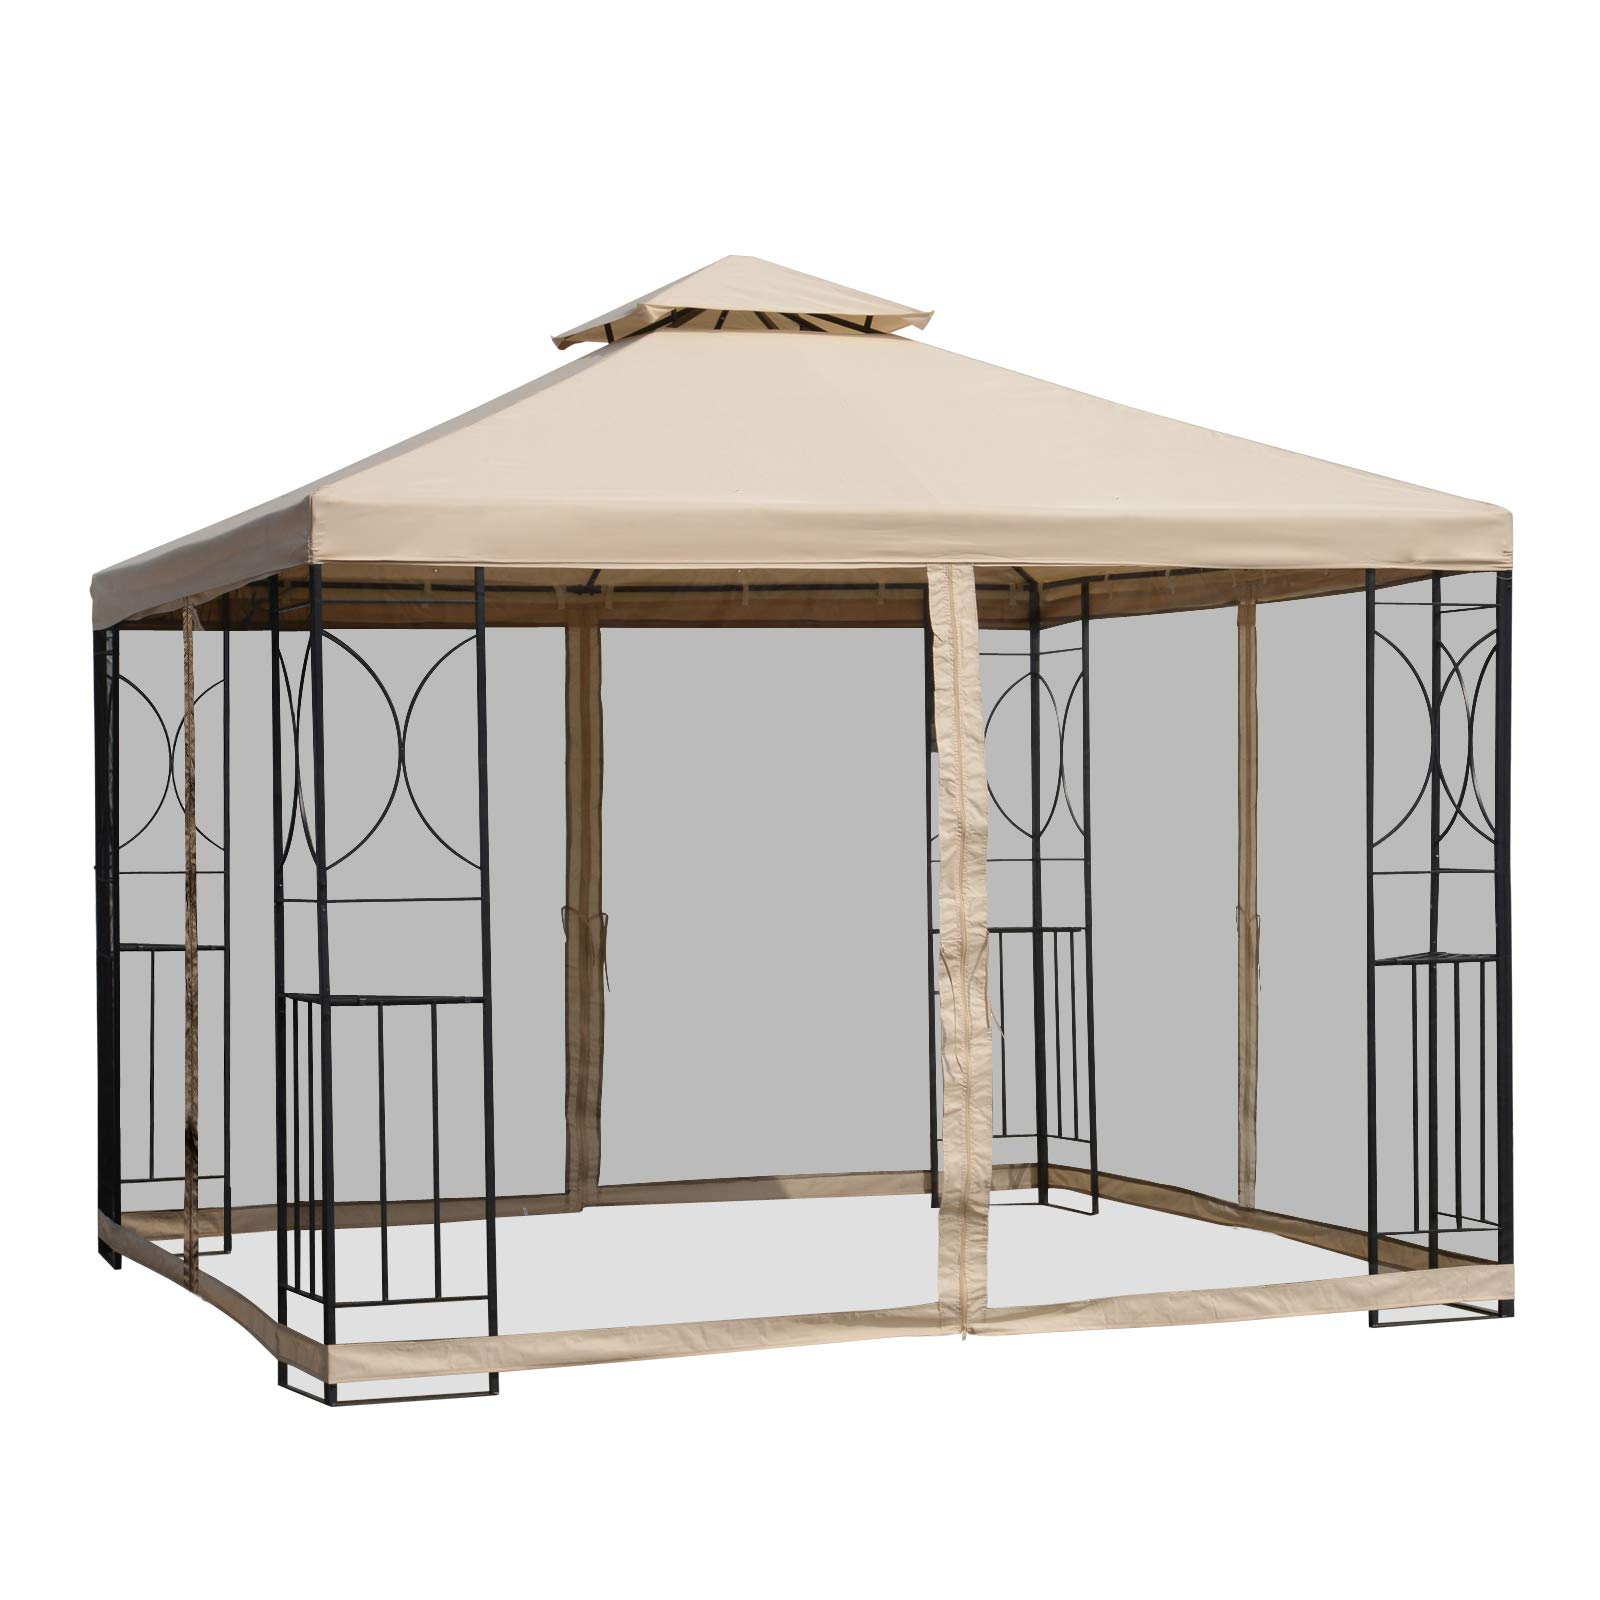 Outsunny 10' x 10' Steel Fabric Square Outdoor Gazebo with Mosquito Netting - Sand